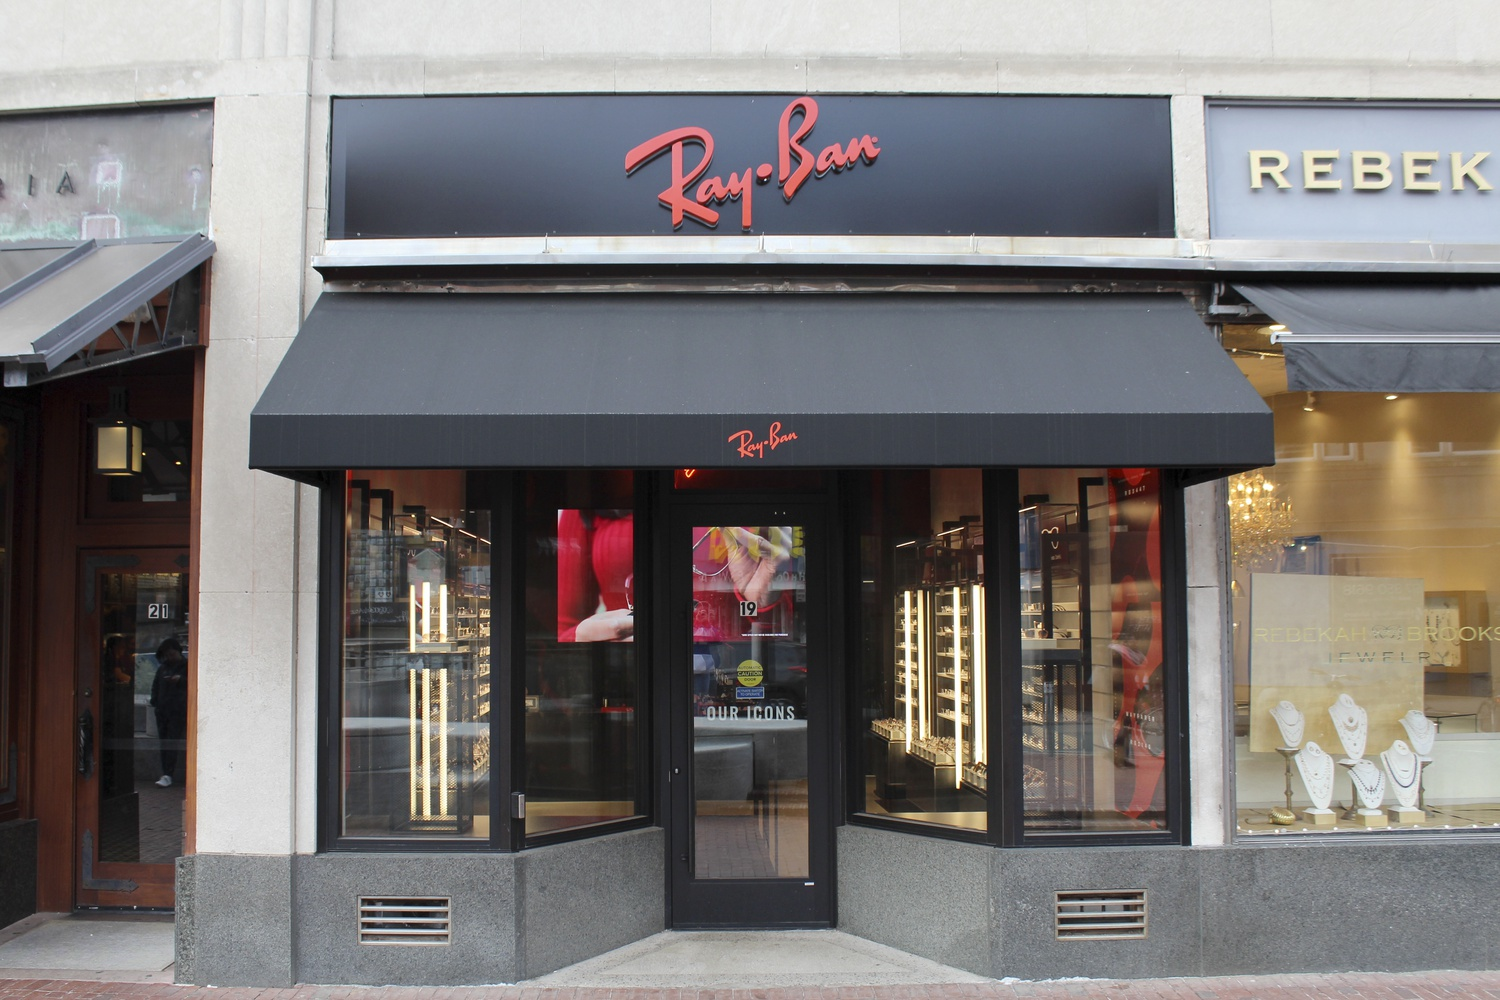 Ray-Ban, a premium eyewear company, opened last September in the Square.